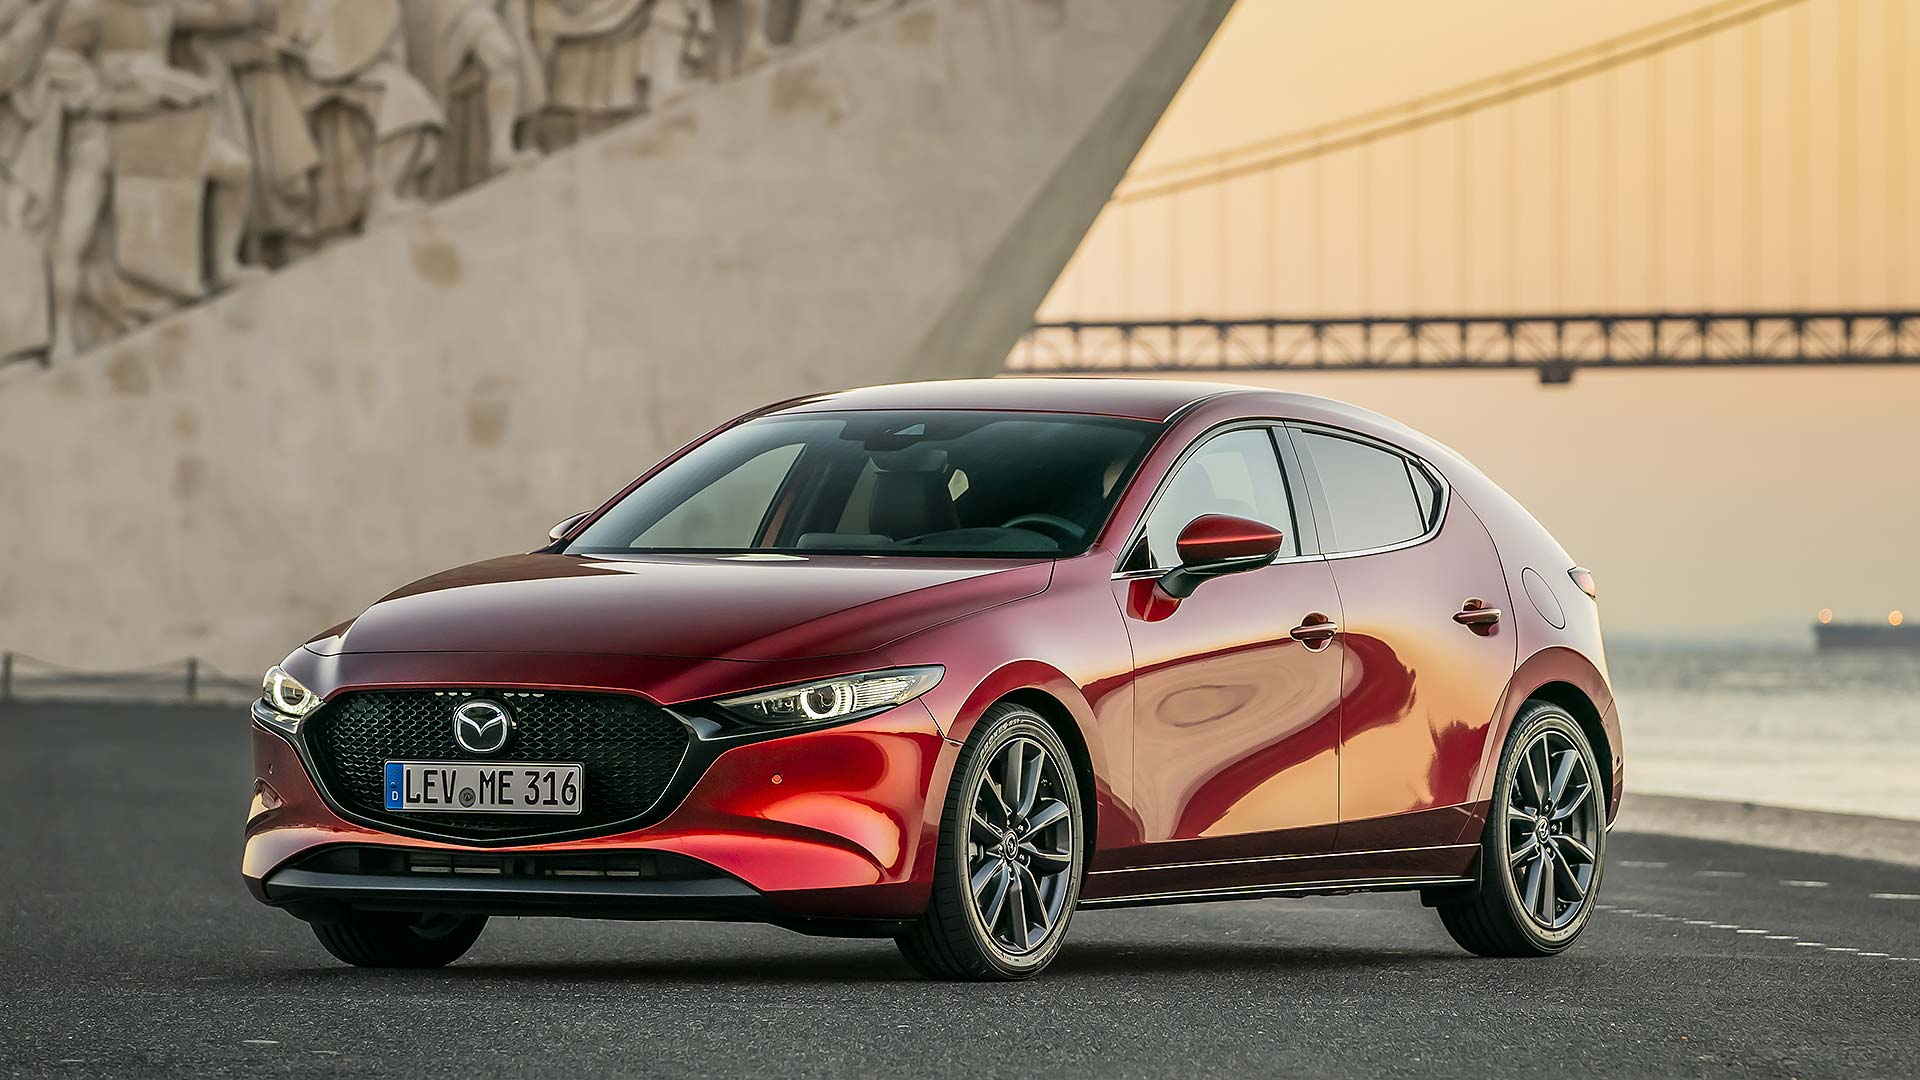 new 2019 mazda 3 prices specs and uk launch date revealed motoring research. Black Bedroom Furniture Sets. Home Design Ideas